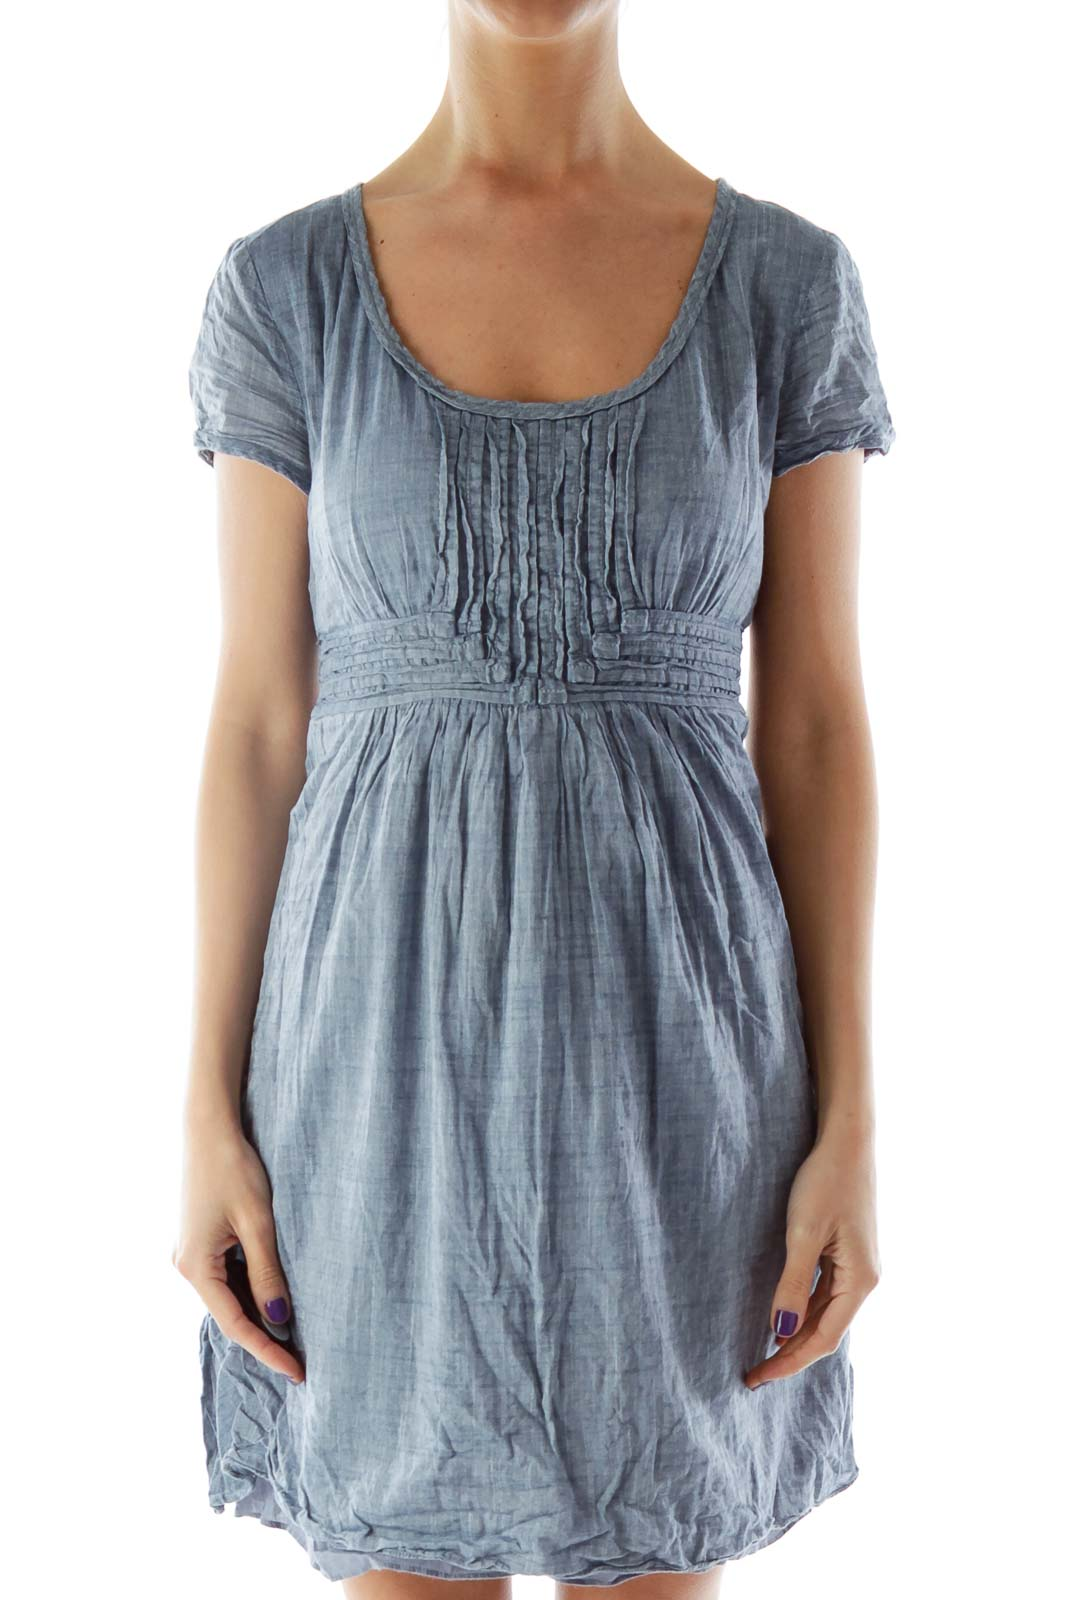 Blue Dress with Stitched Layering Detail Front